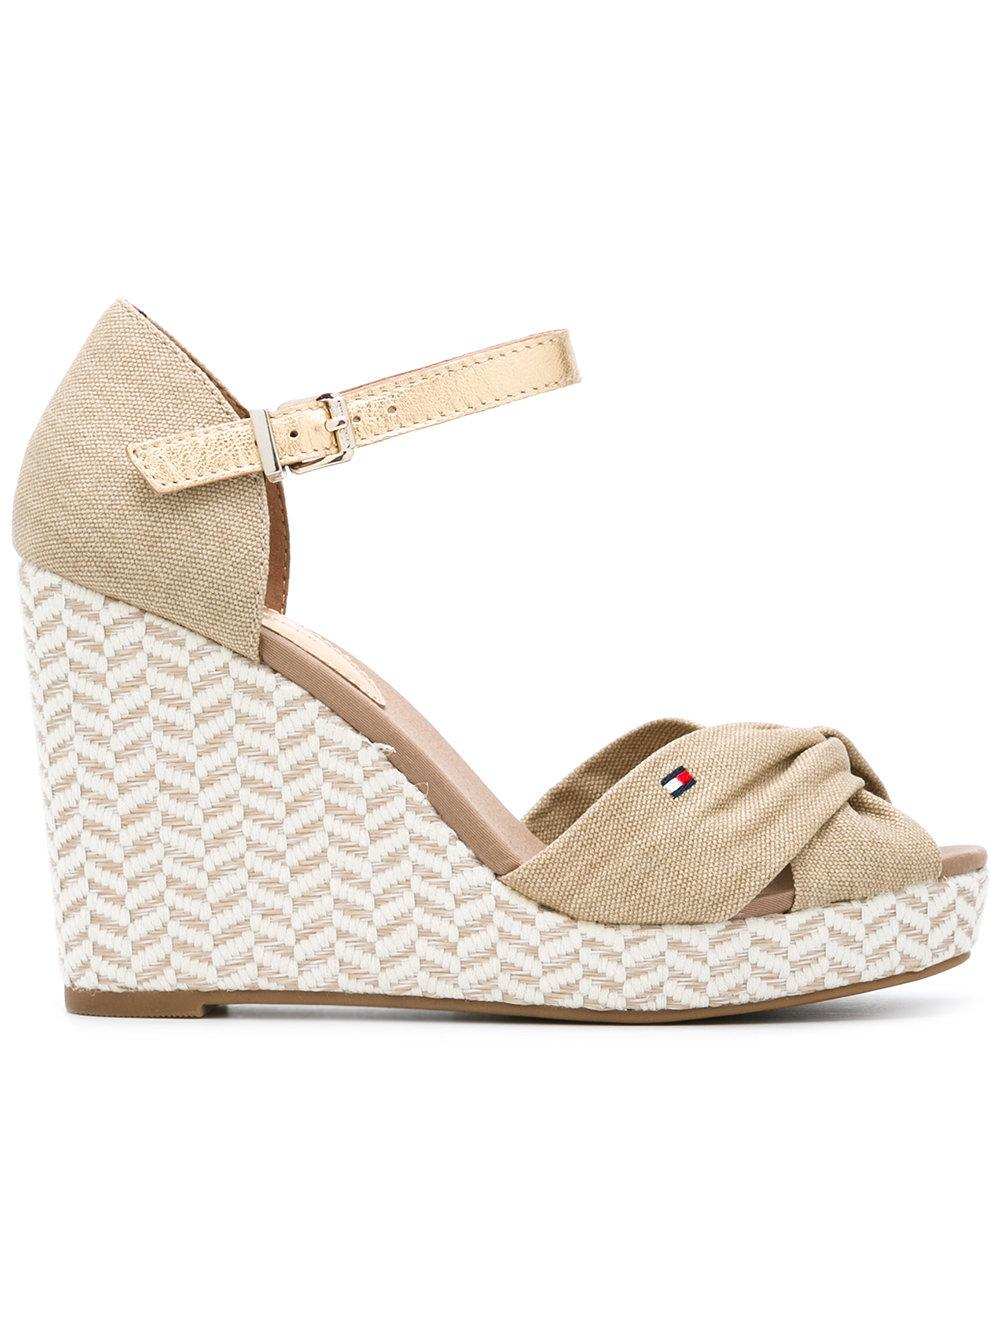 Bloomingdale S Outlet Shoes